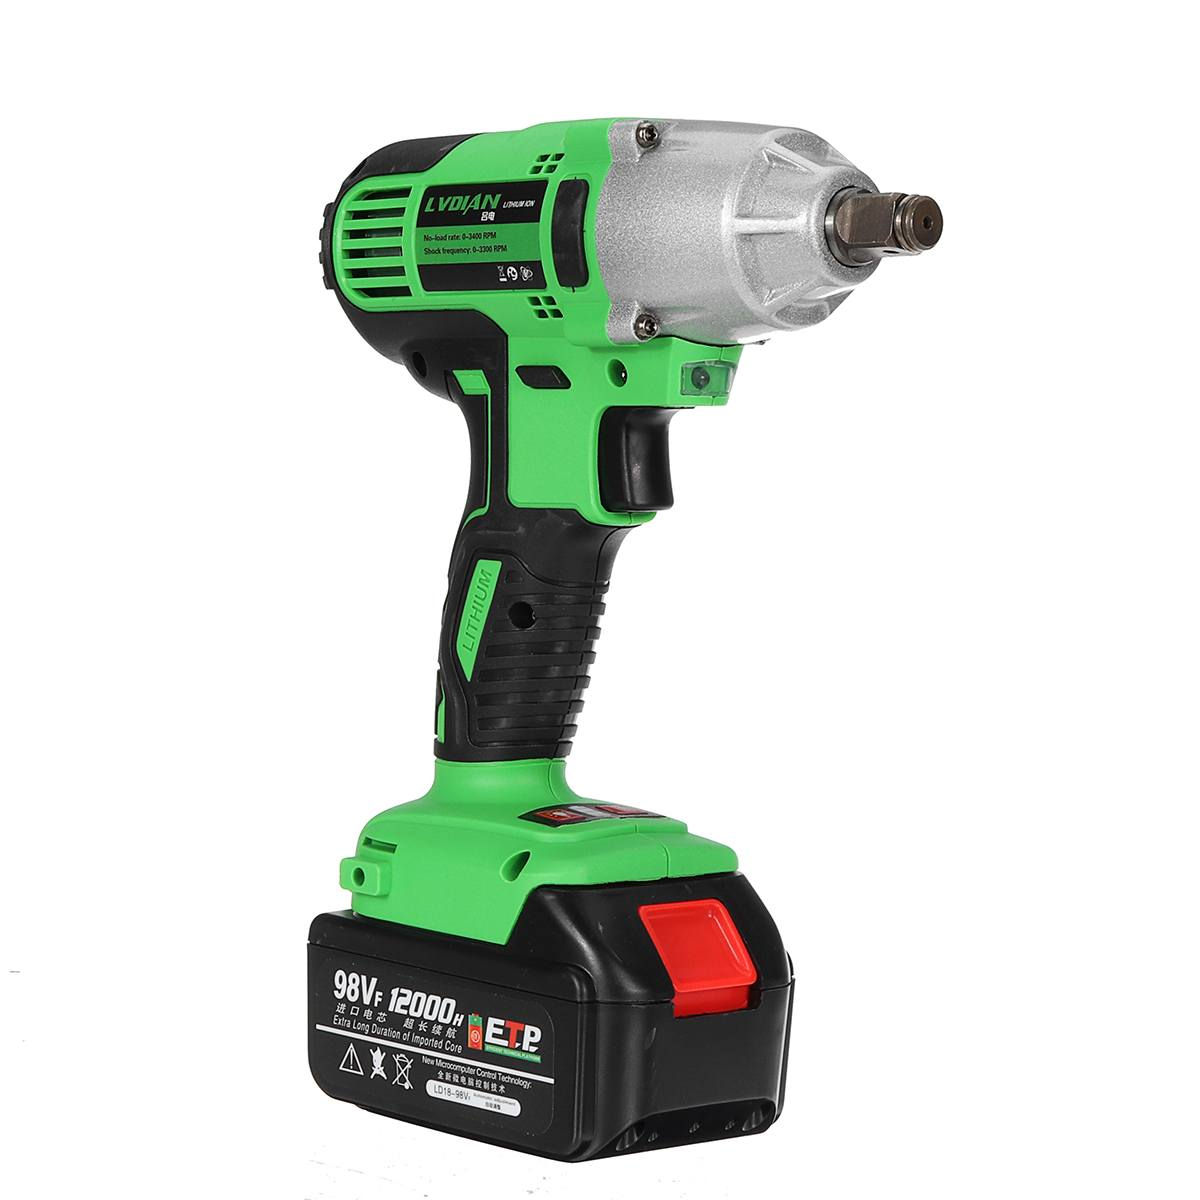 Drill Lights 2inch Battery 12000mah Cordless Wrench Brushless With LED Electric 1 98VF Impact Wrench Power DRILLPRO Electric Tools